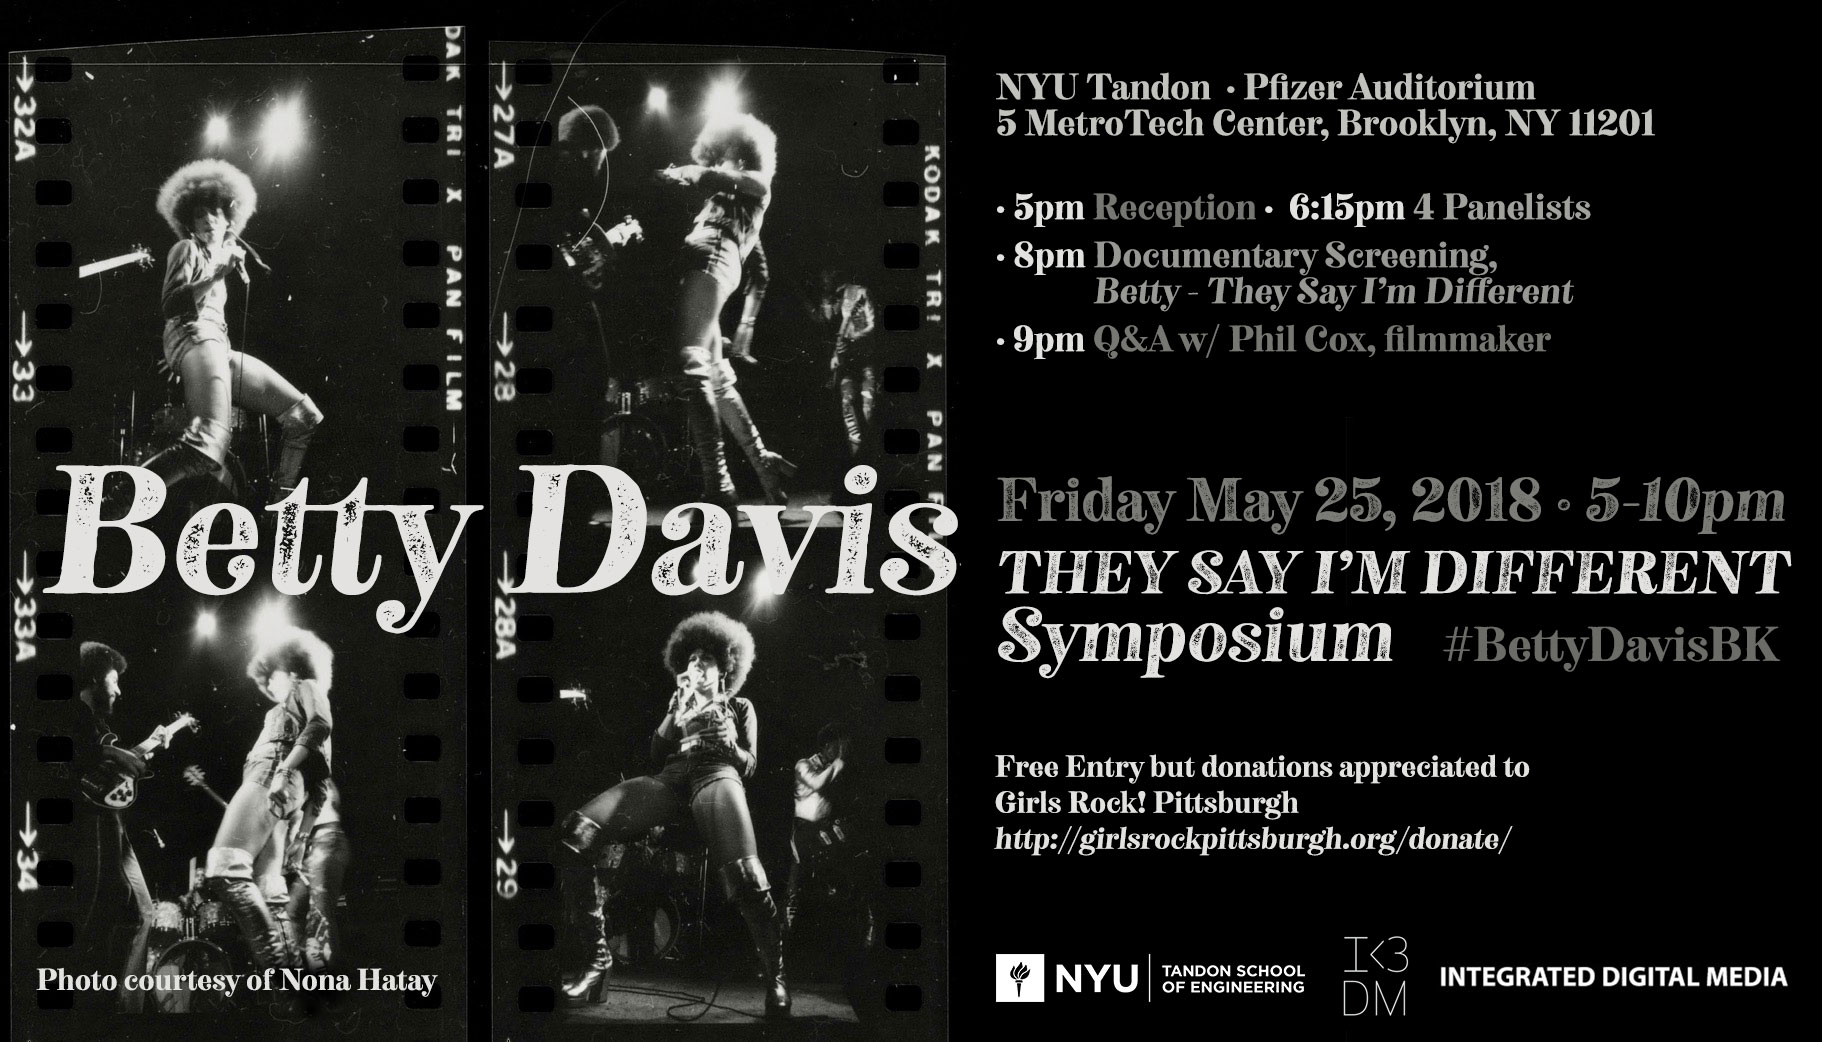 #BettyDavisBK Symposium (2018)